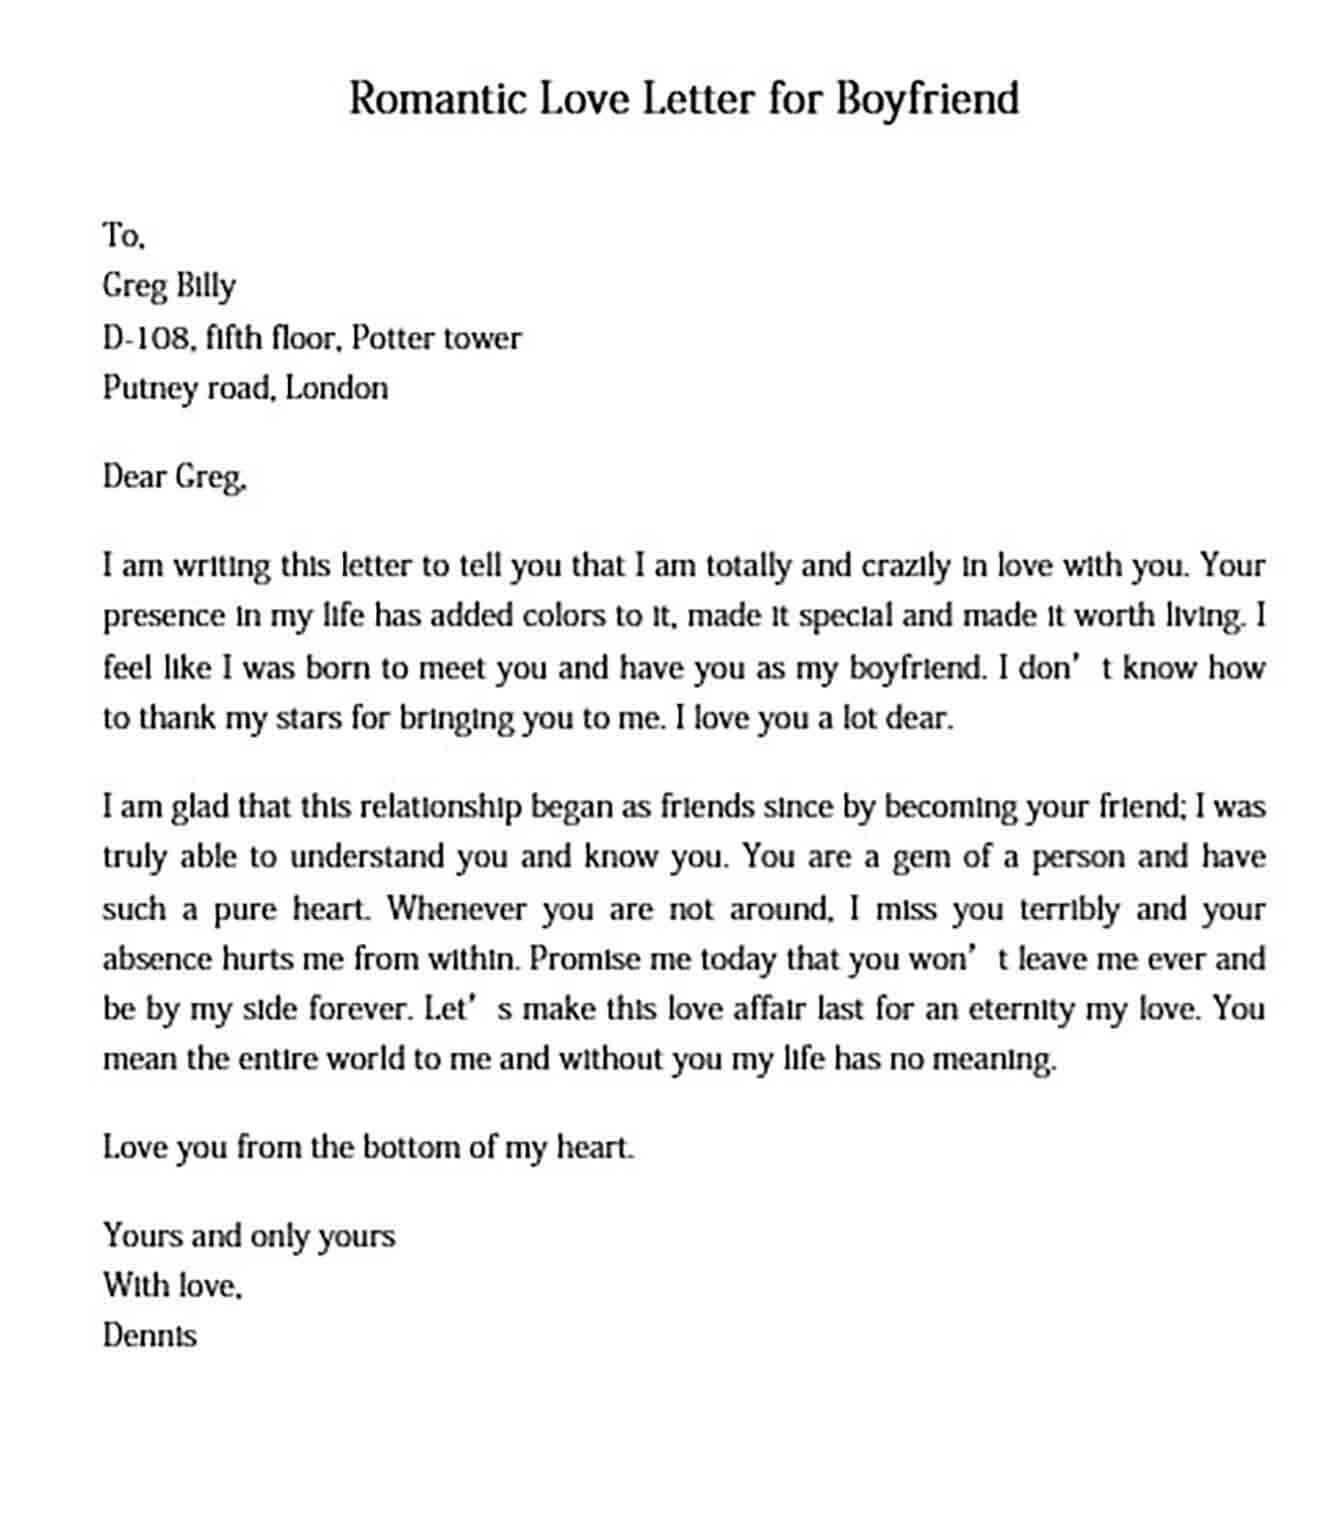 romantic love letter for boyfriend